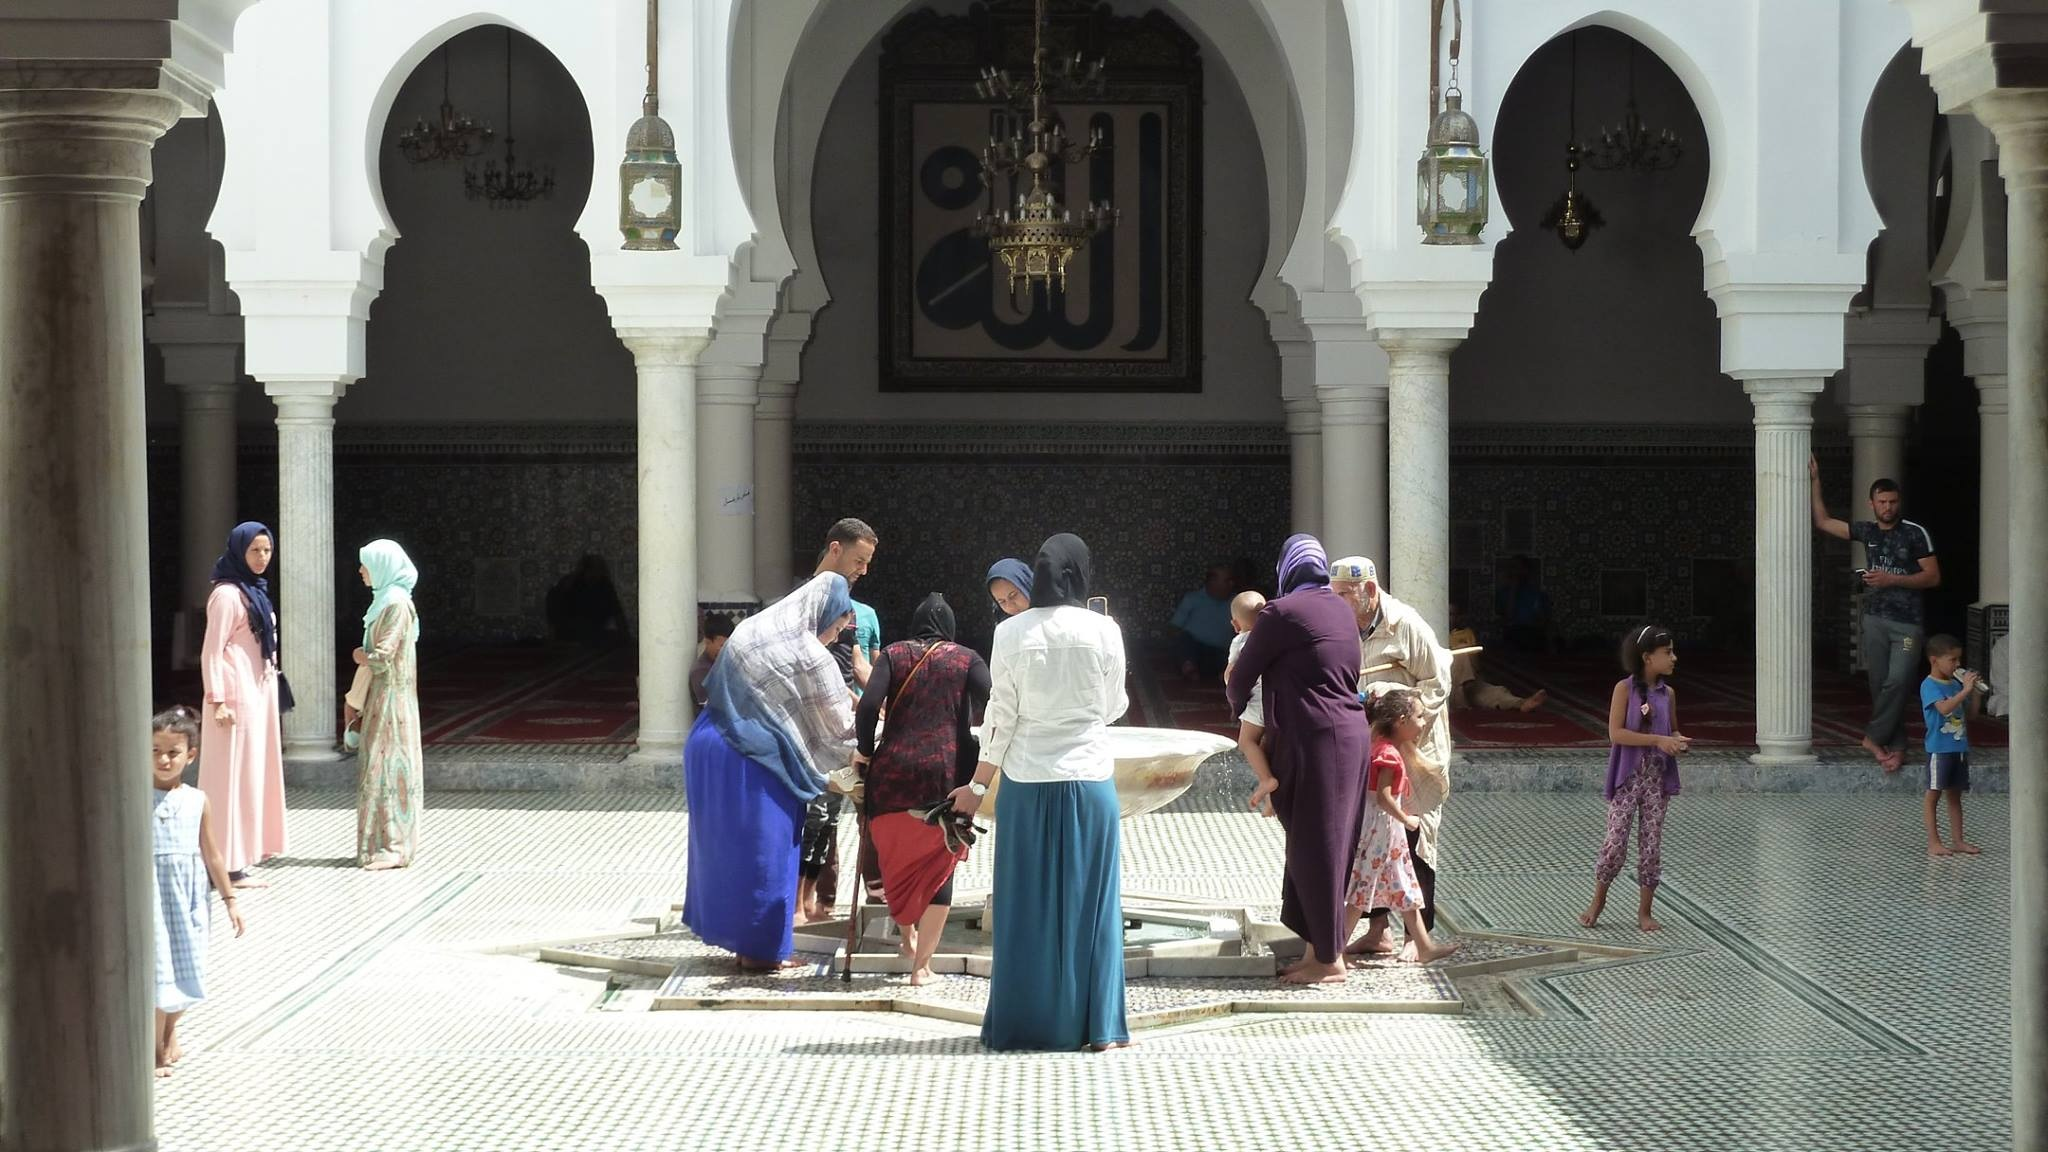 At the mosque by beatrice de filippis